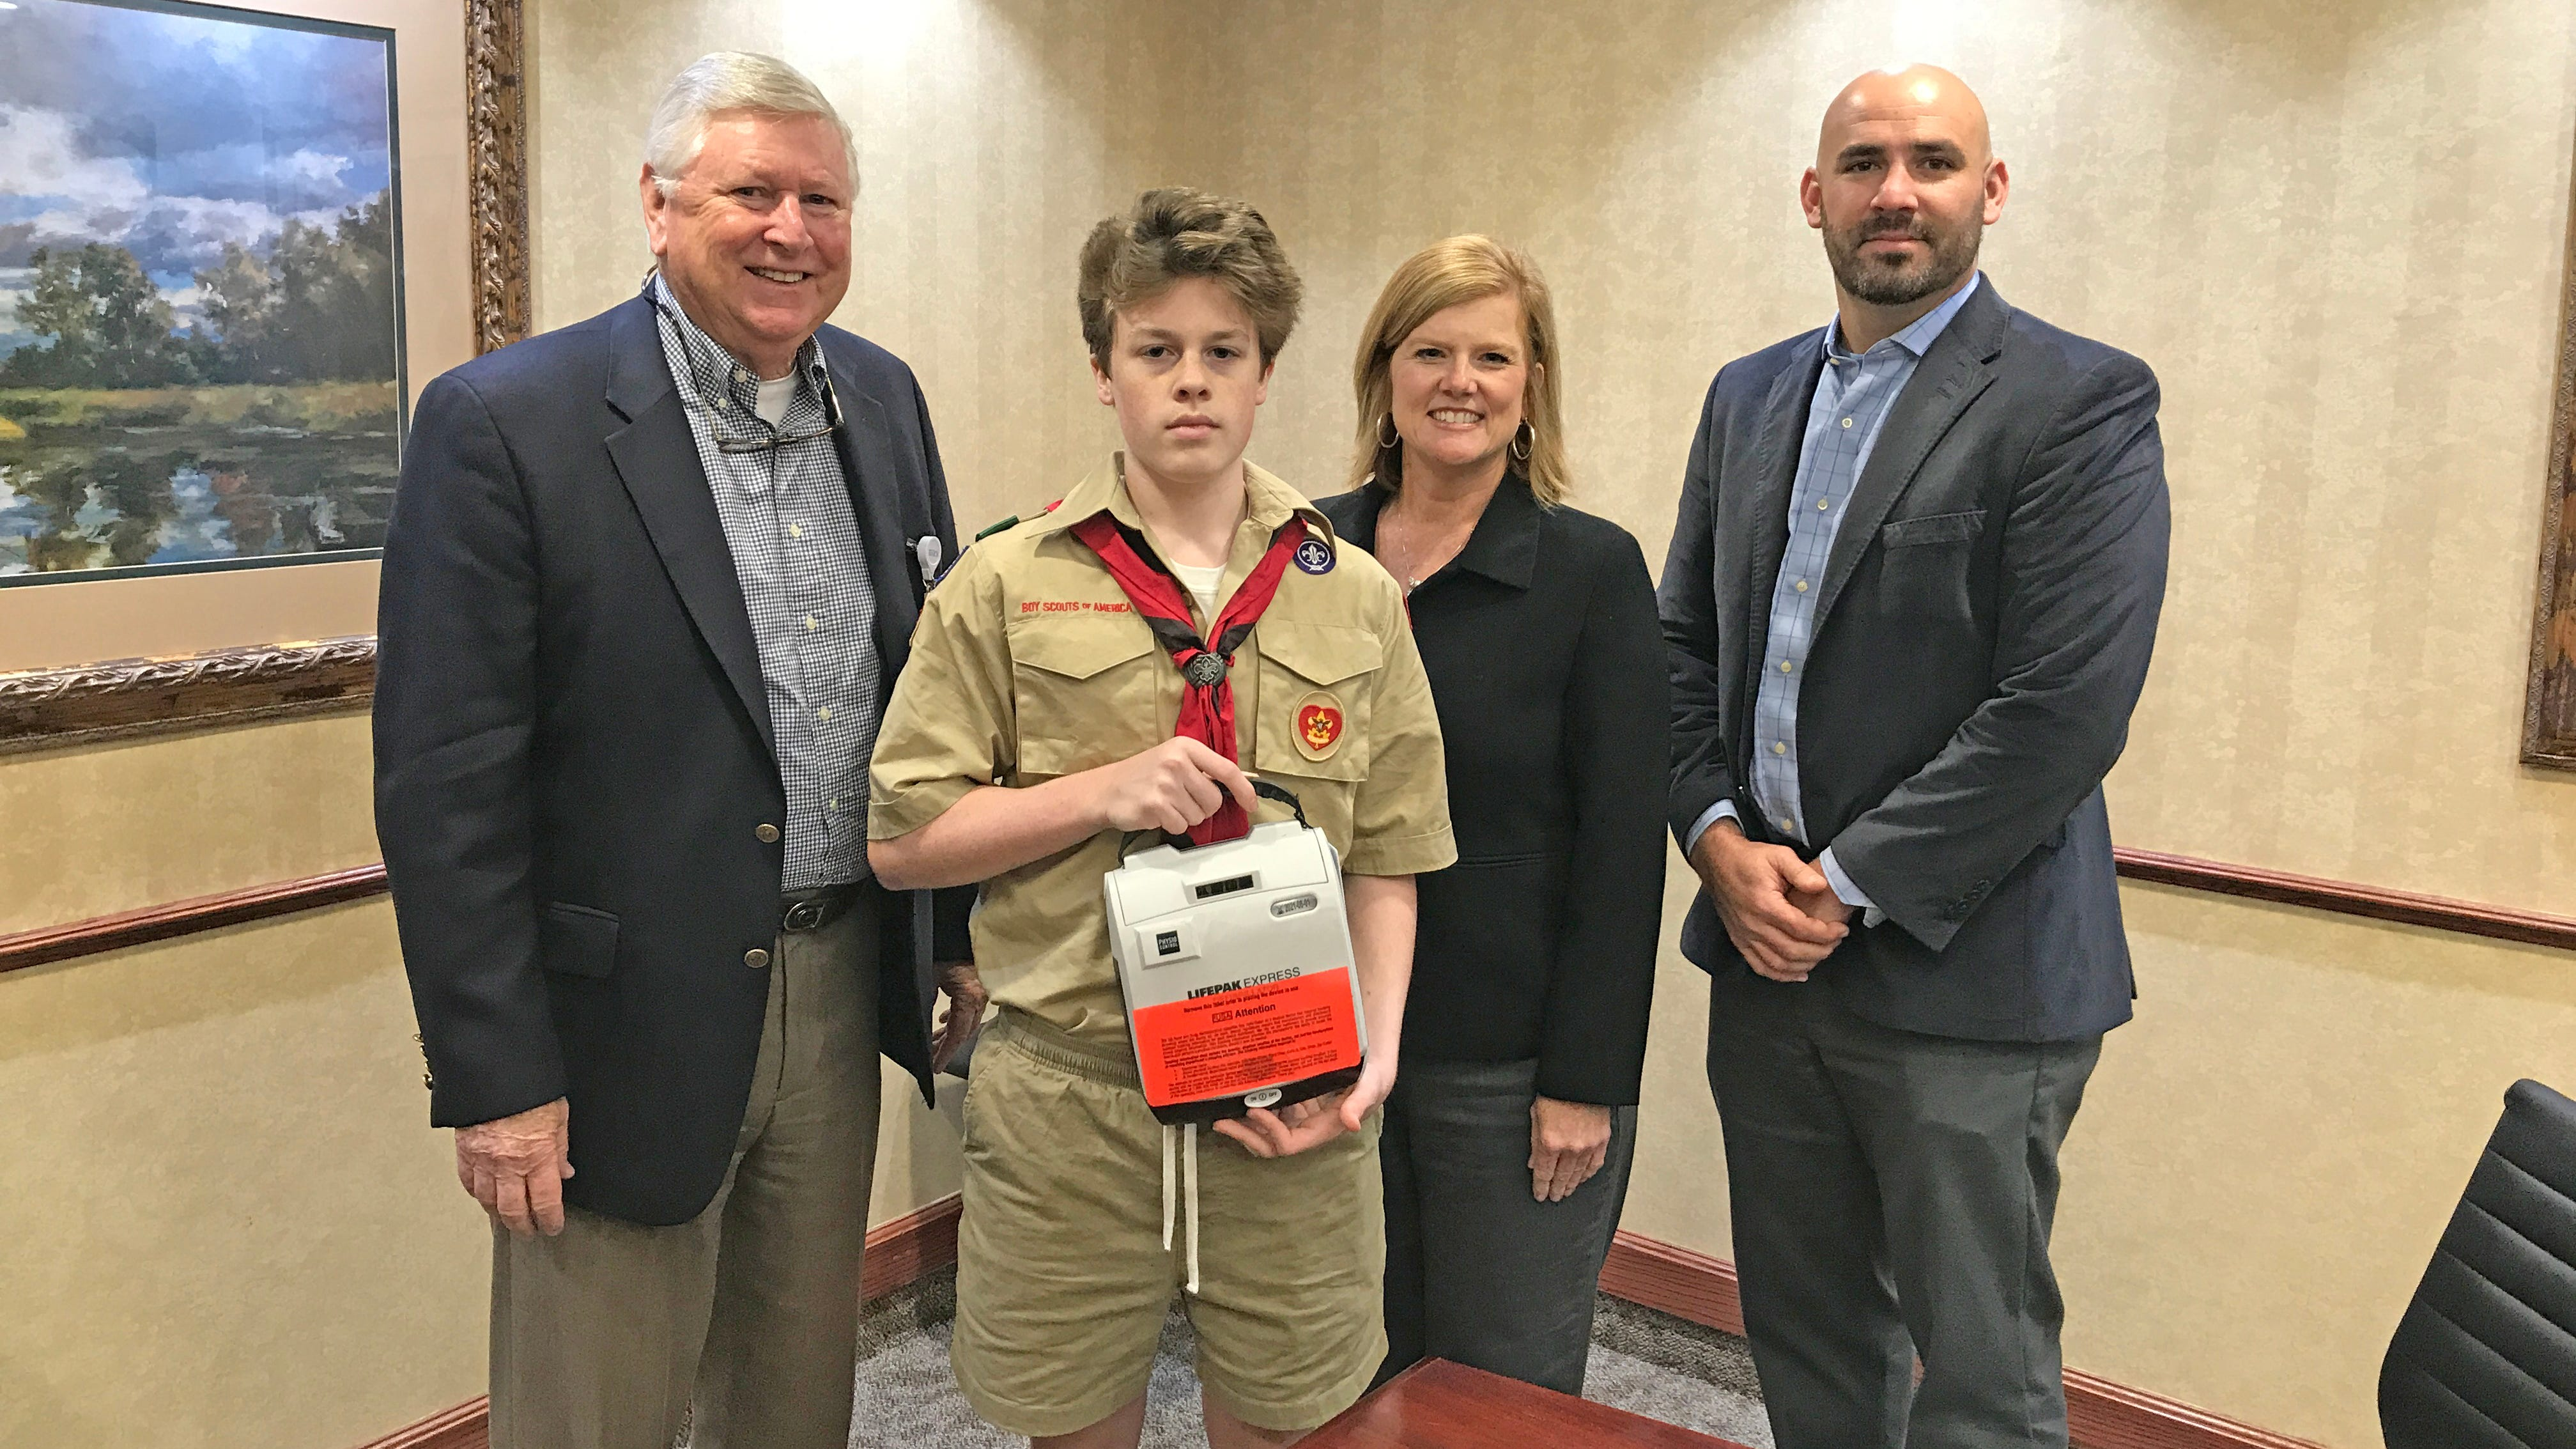 Ben Camp, a sophomore at MHHS and Eagle Scout candidate, displays one of the AEDs he helped secure for Mountain Home Public Schools. Also pictured are: (from left)Vice President of Business Development and the Executive Director of the Baxter Regional Hospital Foundation, Barney Larry; Dr. Leigh Anne Gigliotti, Mountain Home Public Schools Assistant Superintendent; and Dr. Jake Long, Mountain Home Public Schools Superintendent.